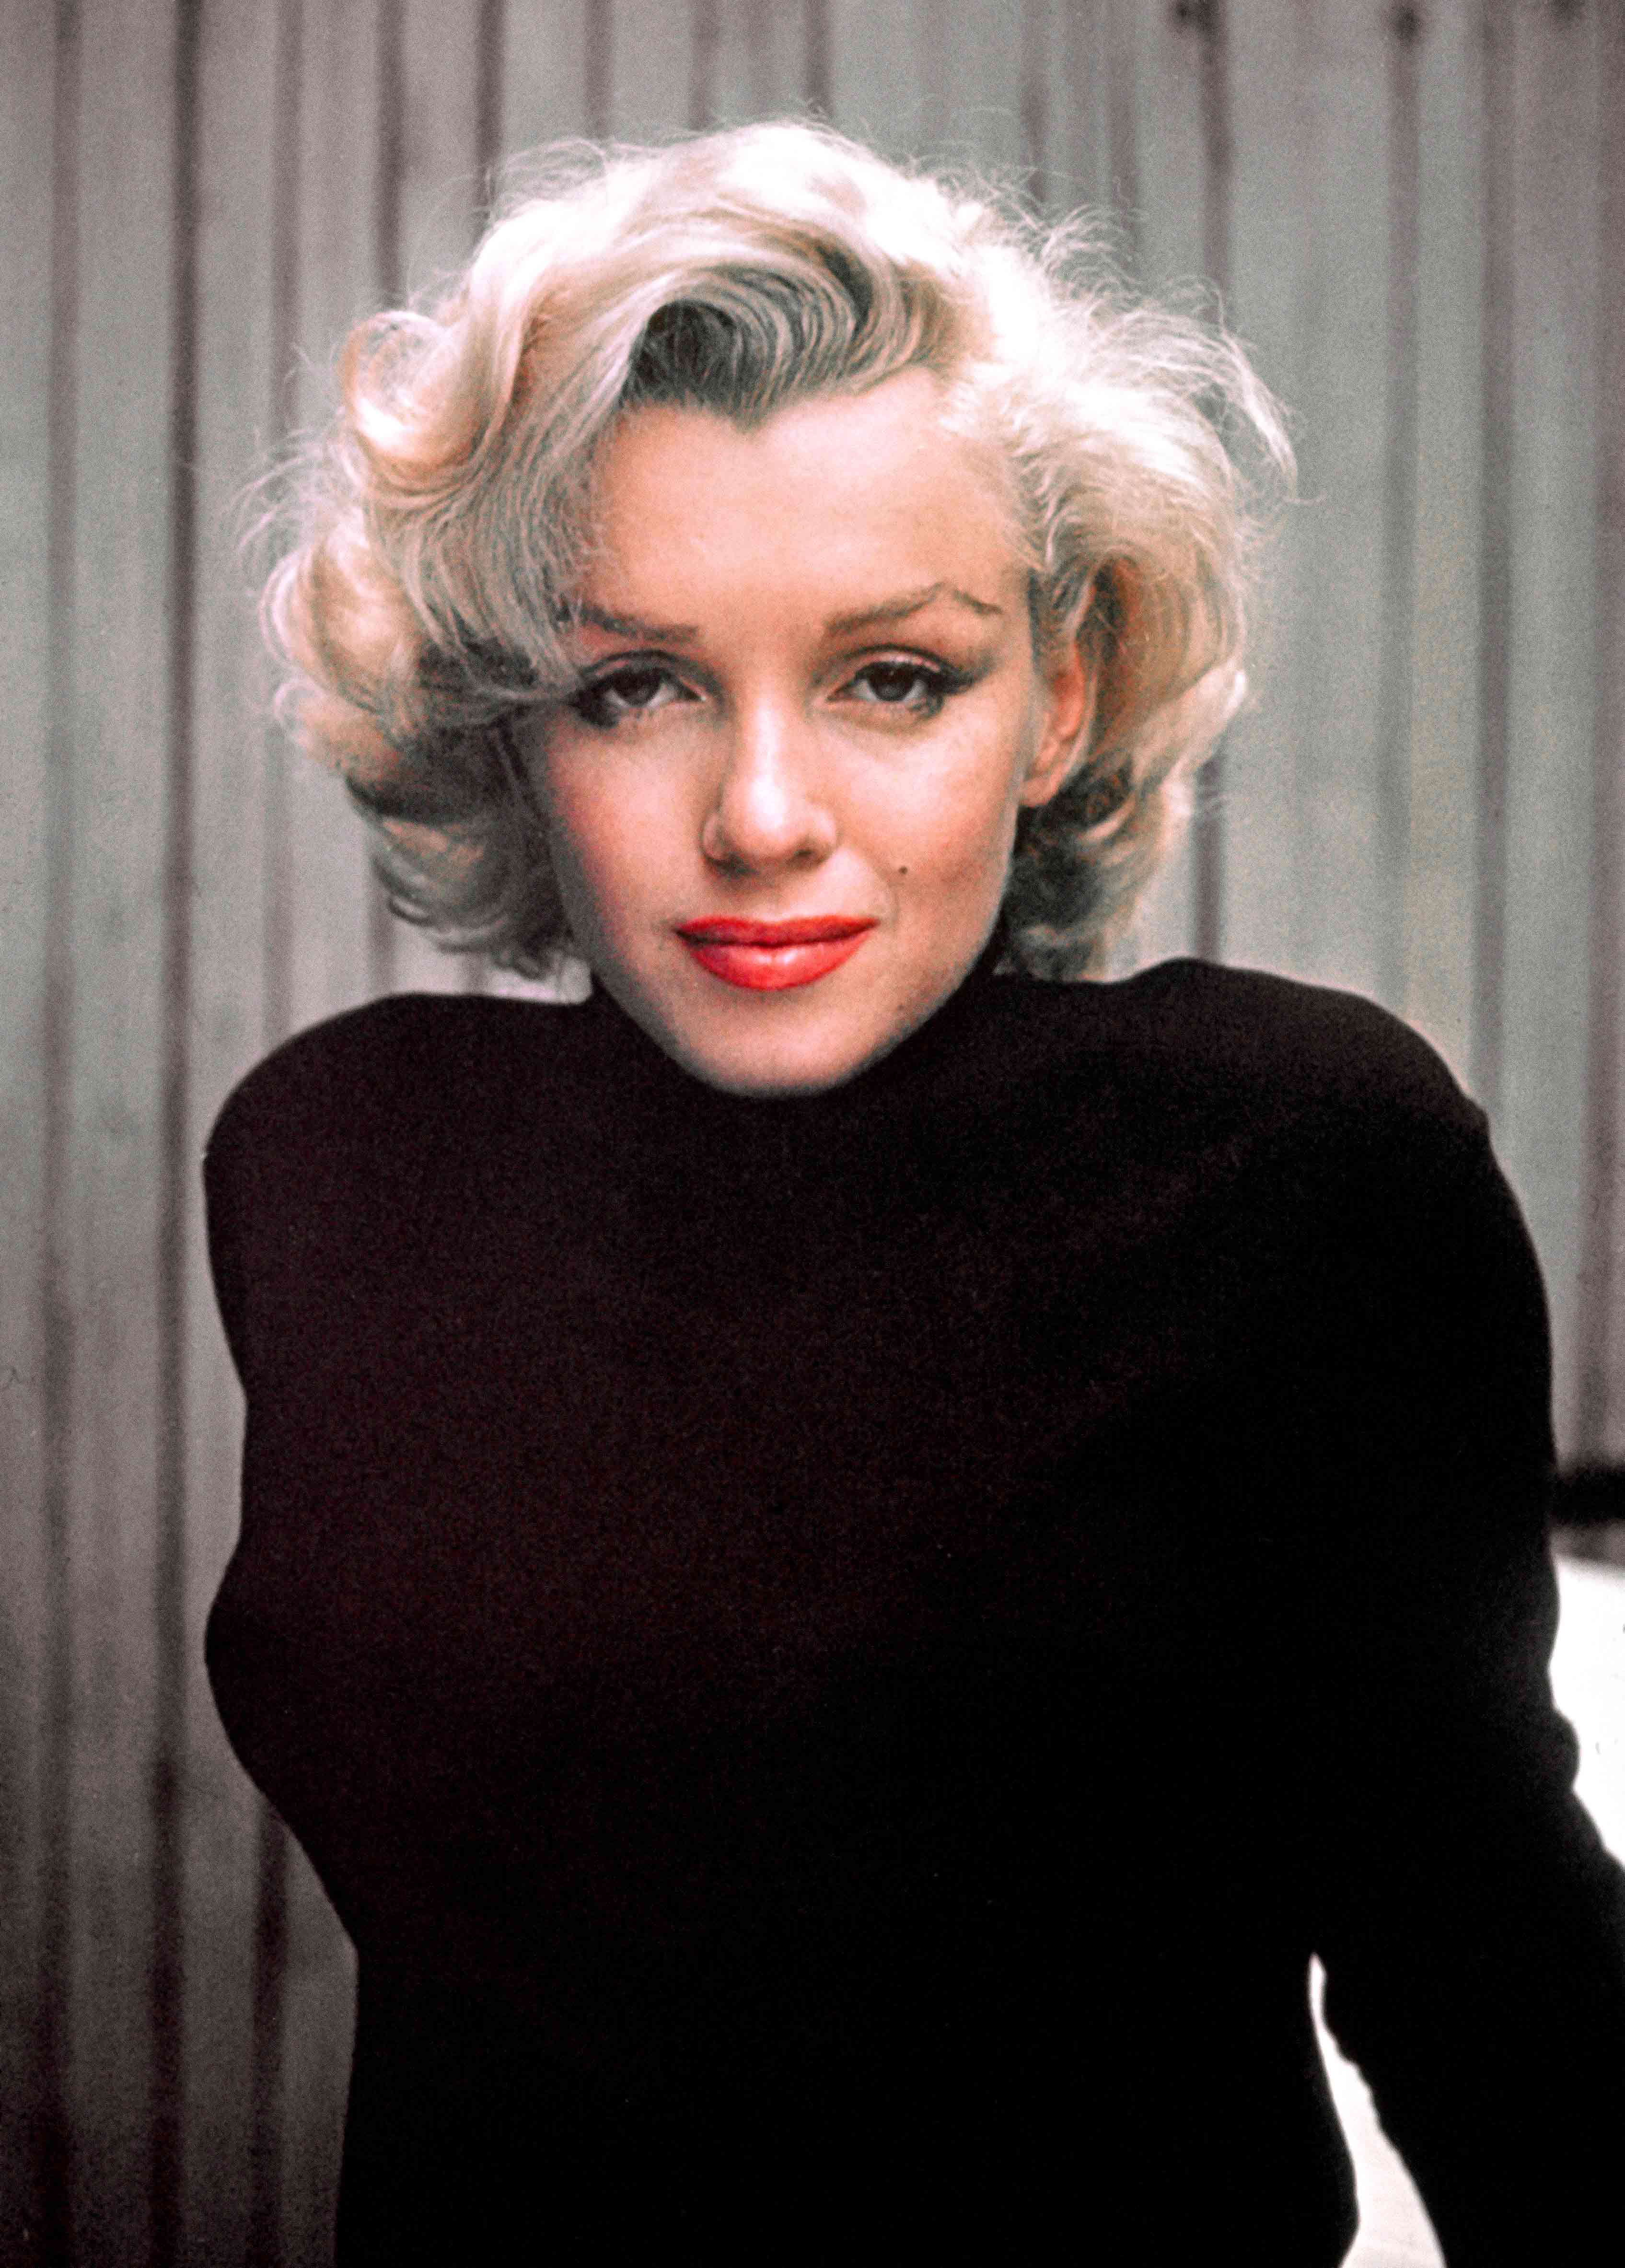 Marilyn Monroe s Hair Expected to Sell for  8K at Auction ea13b1ba9617